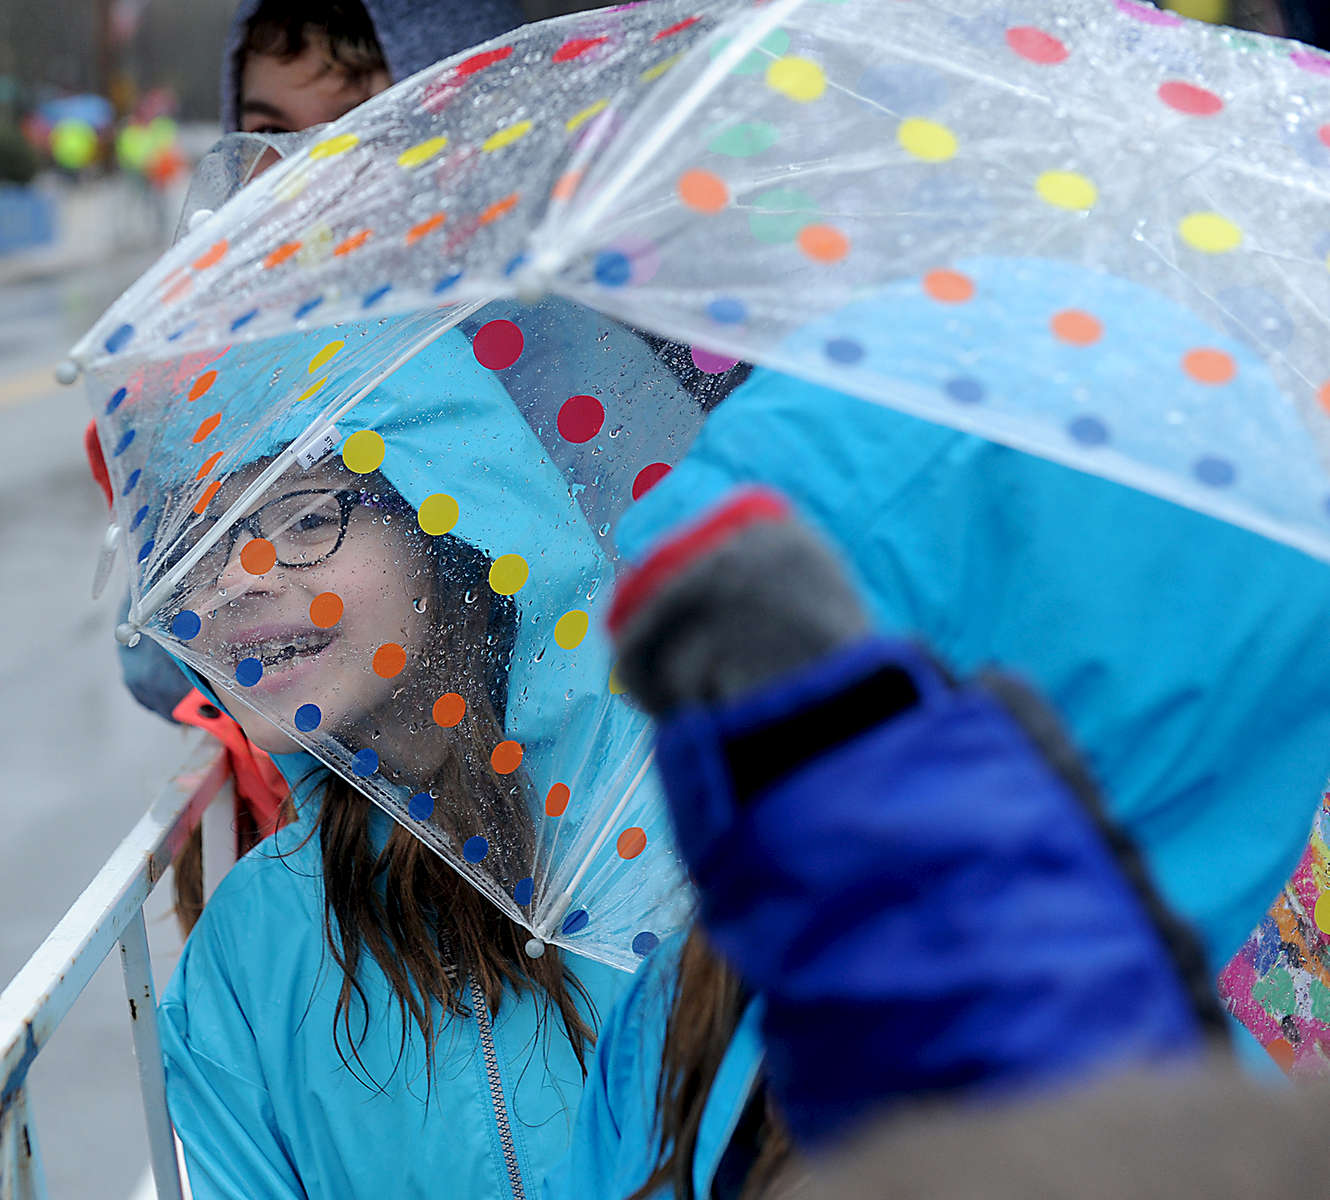 4/16/18-- HOPKINTON--  Kiera Pritchard, 8, of Hopkinton, cheers on runners at the start of the 2018 Boston Marathon. [Daily News and Wicked Local Staff Photo/Art Illman]